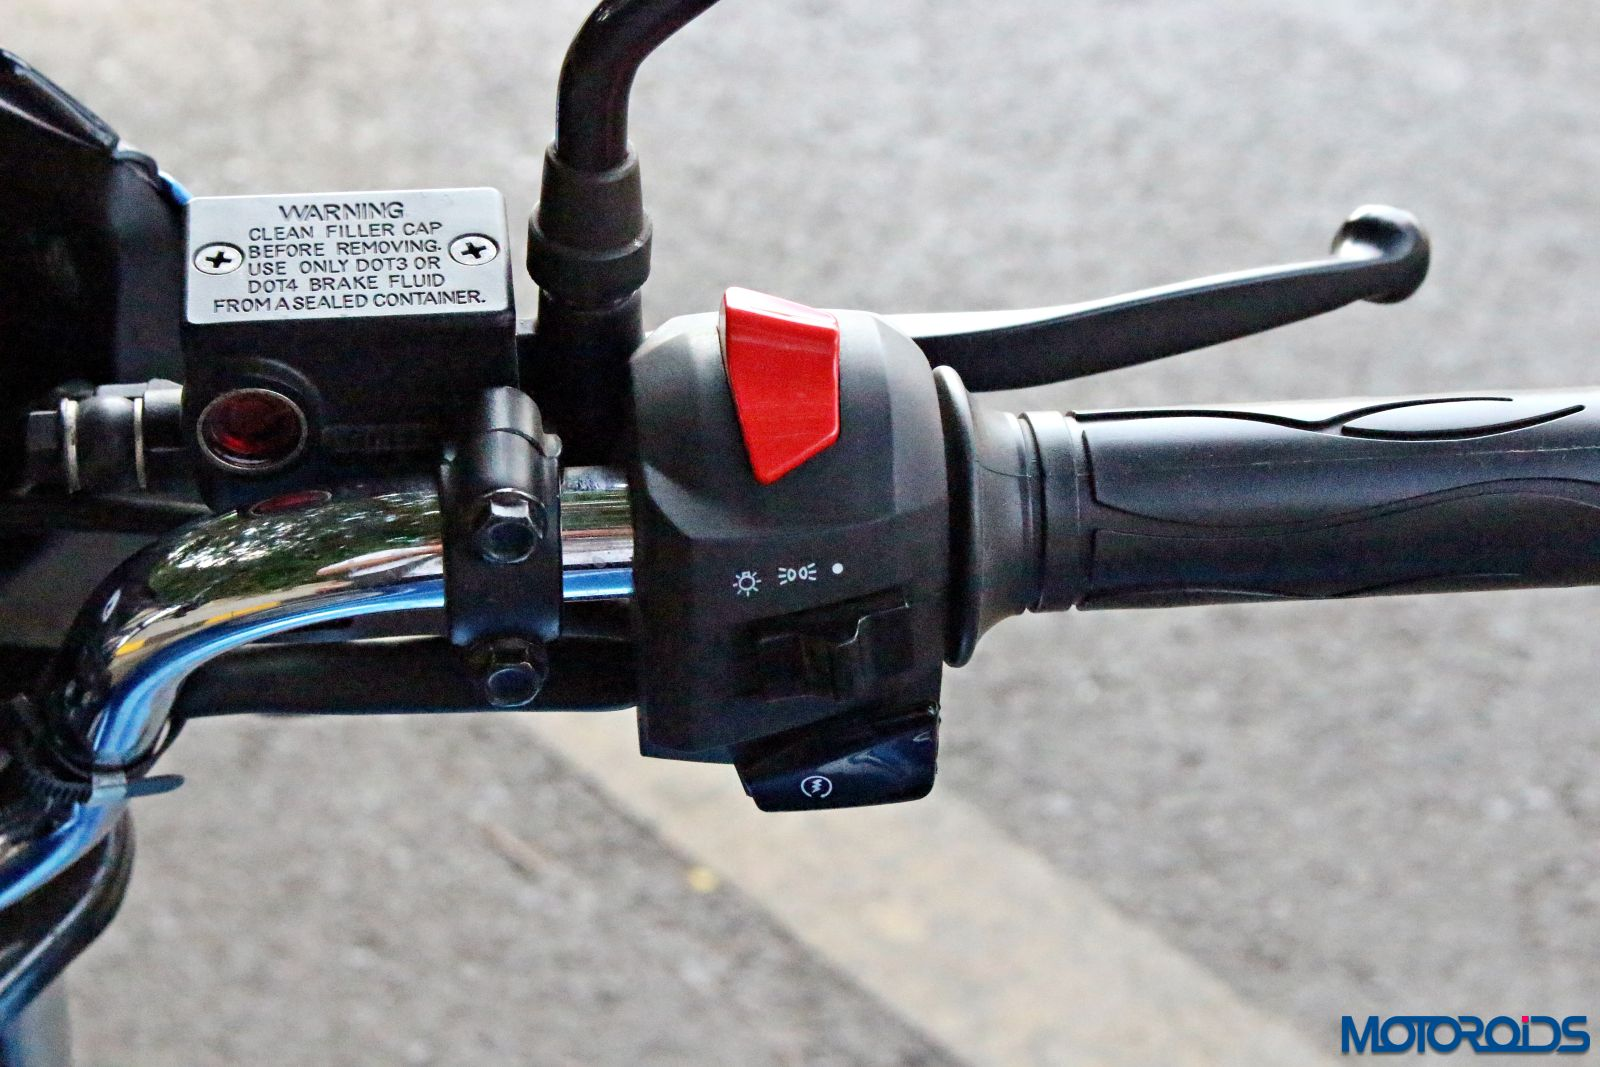 2016 TVS Victor right switch gear